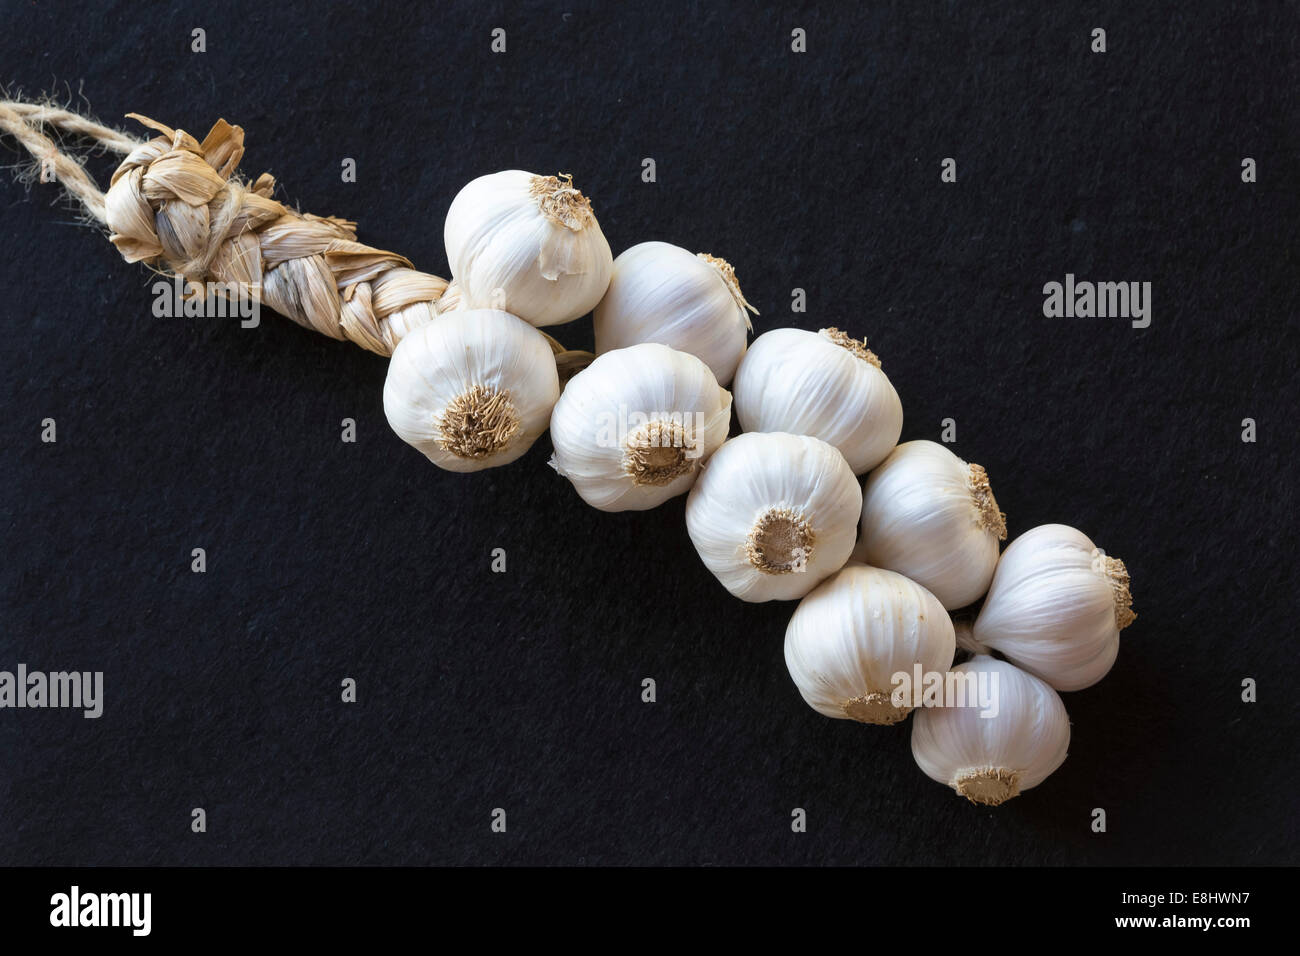 plaited bunched Spanish grown garlic against plain black background, - Stock Image